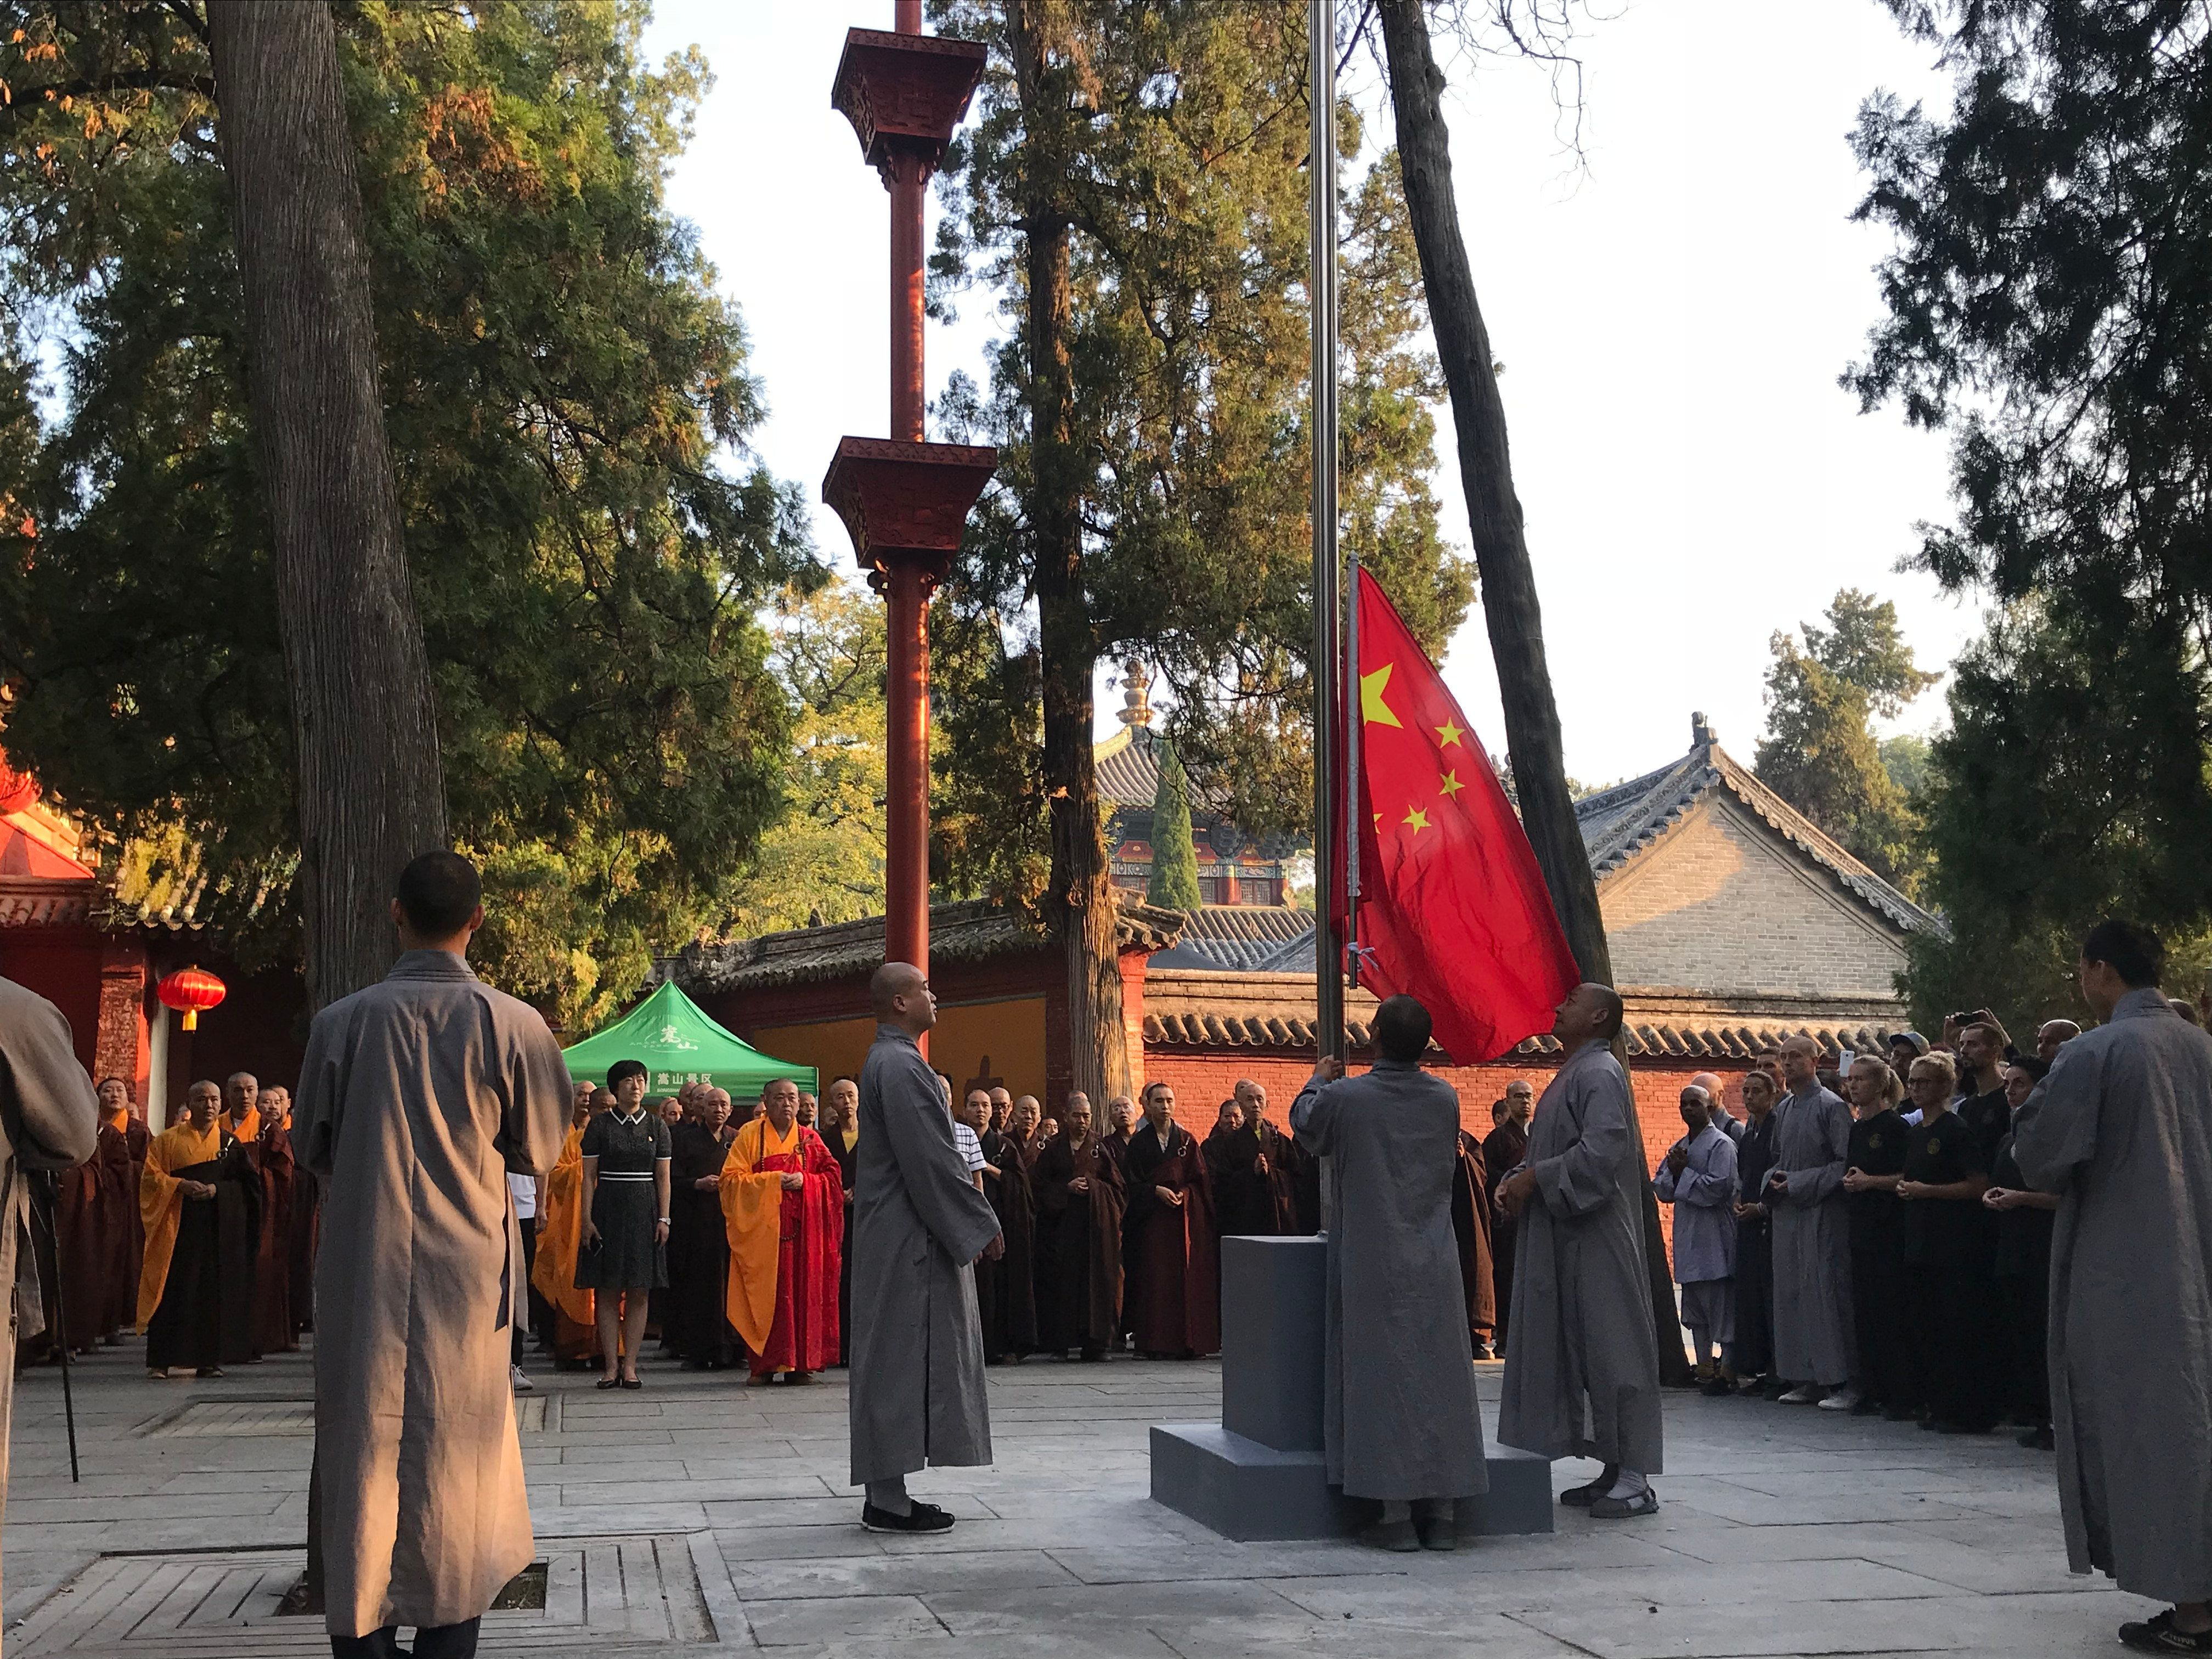 China Debuts New Rules Severely Restricting Religious Activity